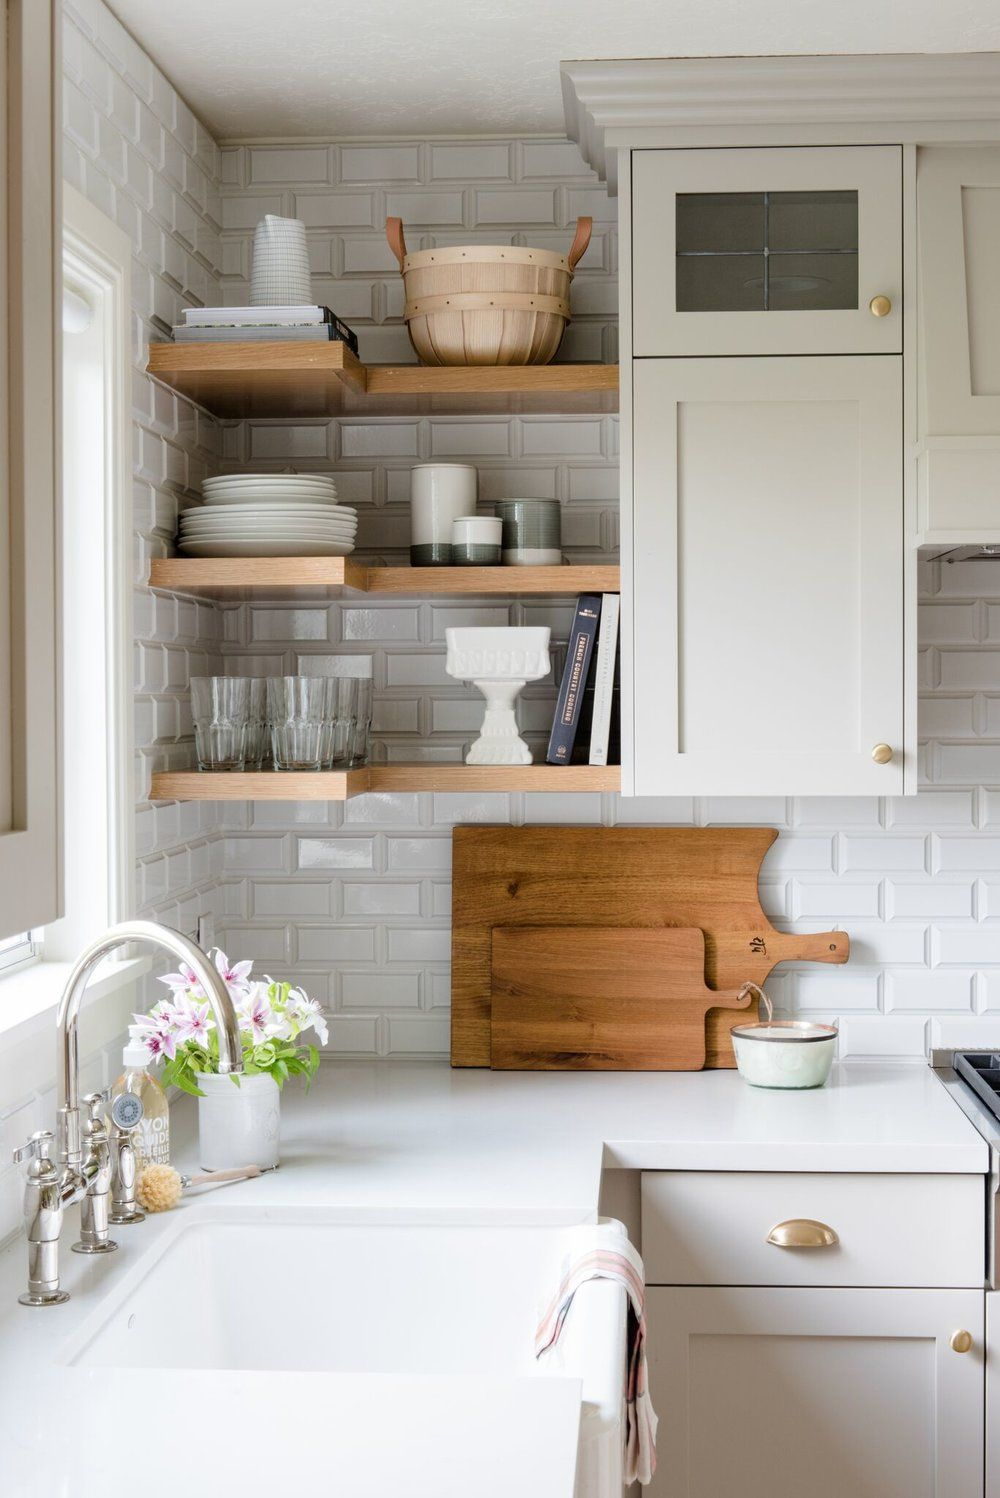 Loving these rad kitchen shelves floating shelves just add such a lovely tone to the atmosphere to beautify your life hop online and shop with shelfology